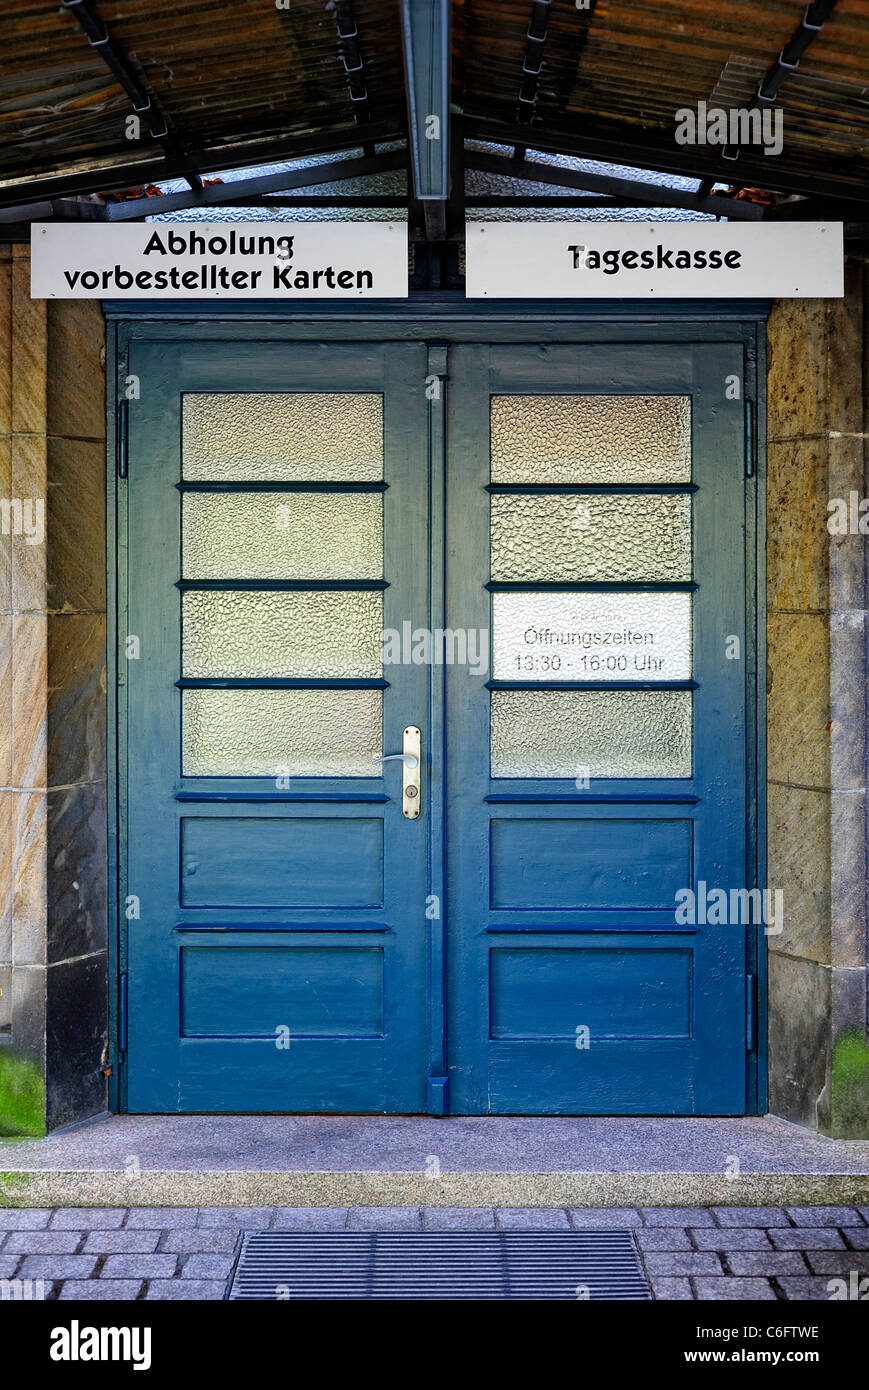 Ticket office for the Bayreuth Festival Theater or Festspielhaus, Bayreuth, Bavaria, Germany - Stock Image